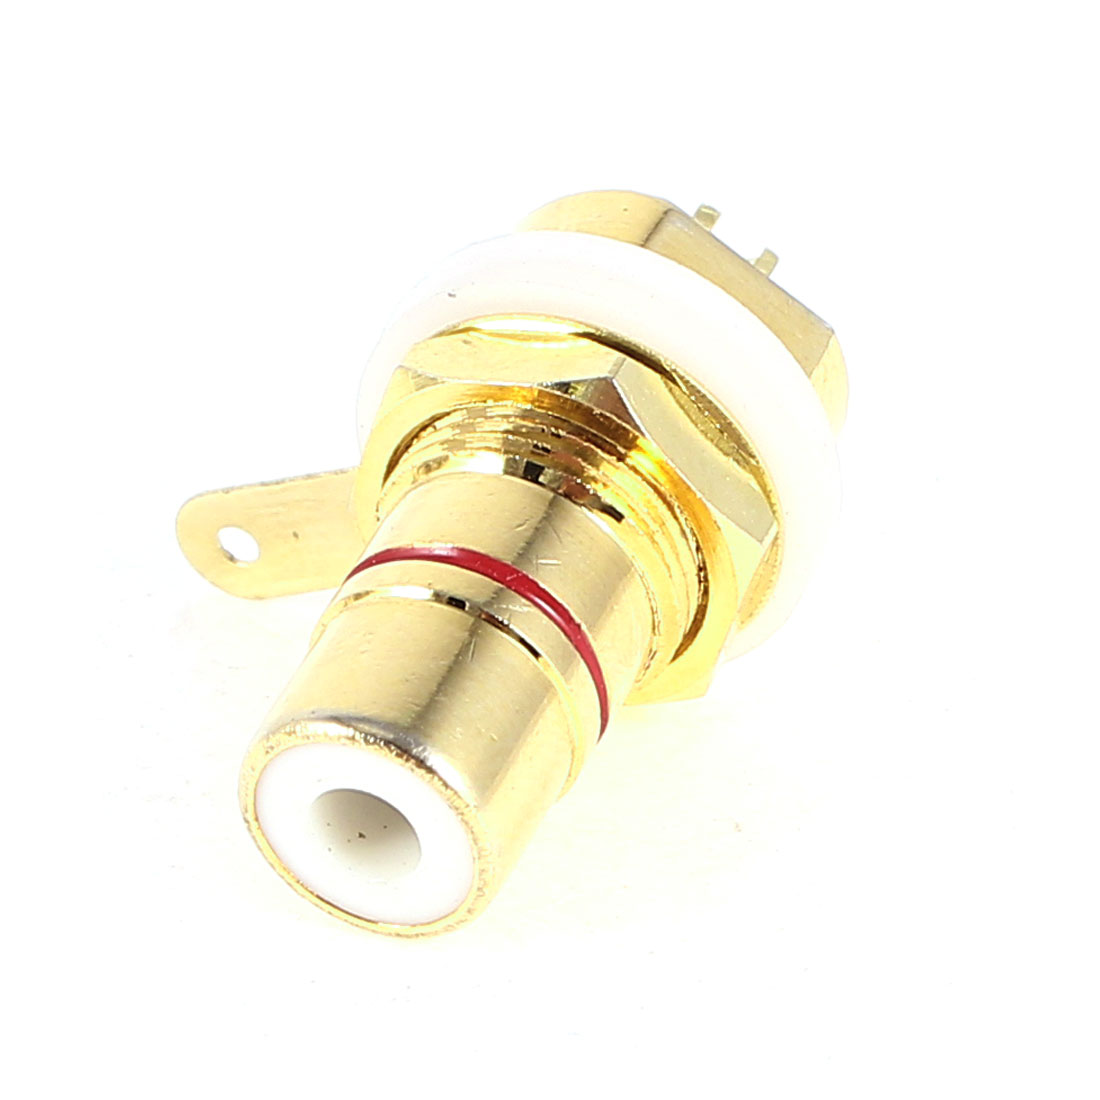 Gold Tone Metal RCA Female Jack Socket Bulkhead Soldering Connector